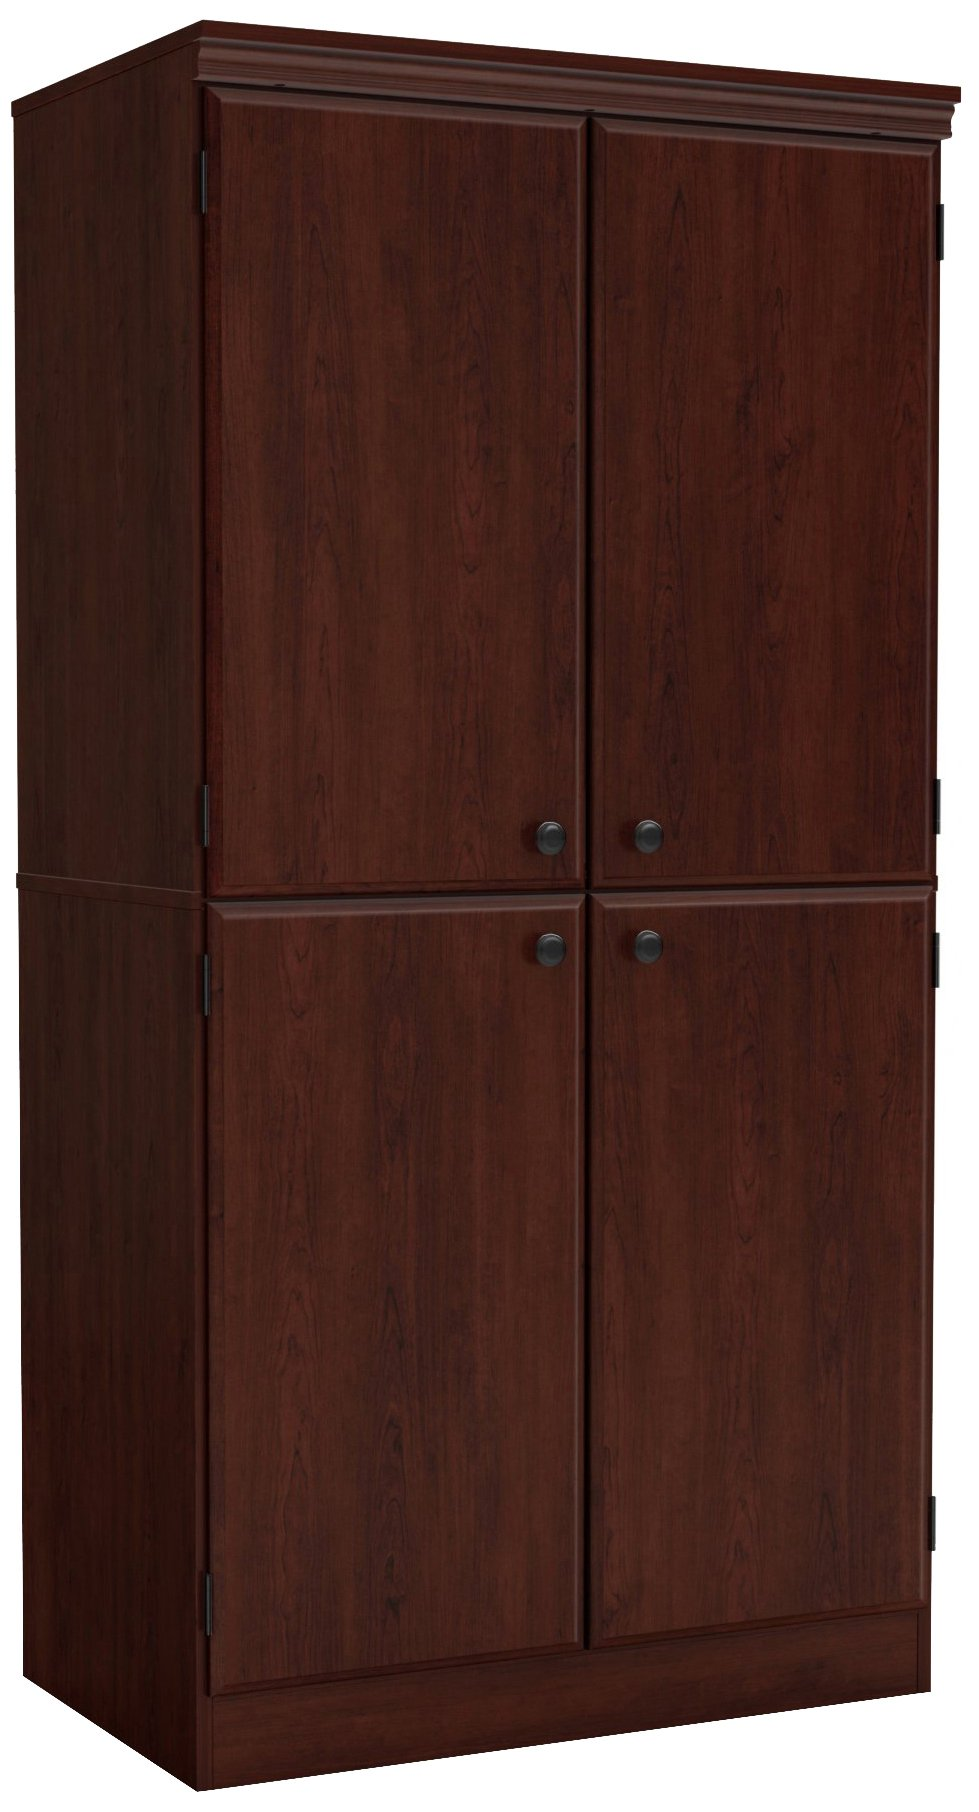 South Shore 7246971 Tall 4-Door Storage Cabinet with Adjustable Shelves, Royal Cherry by South Shore